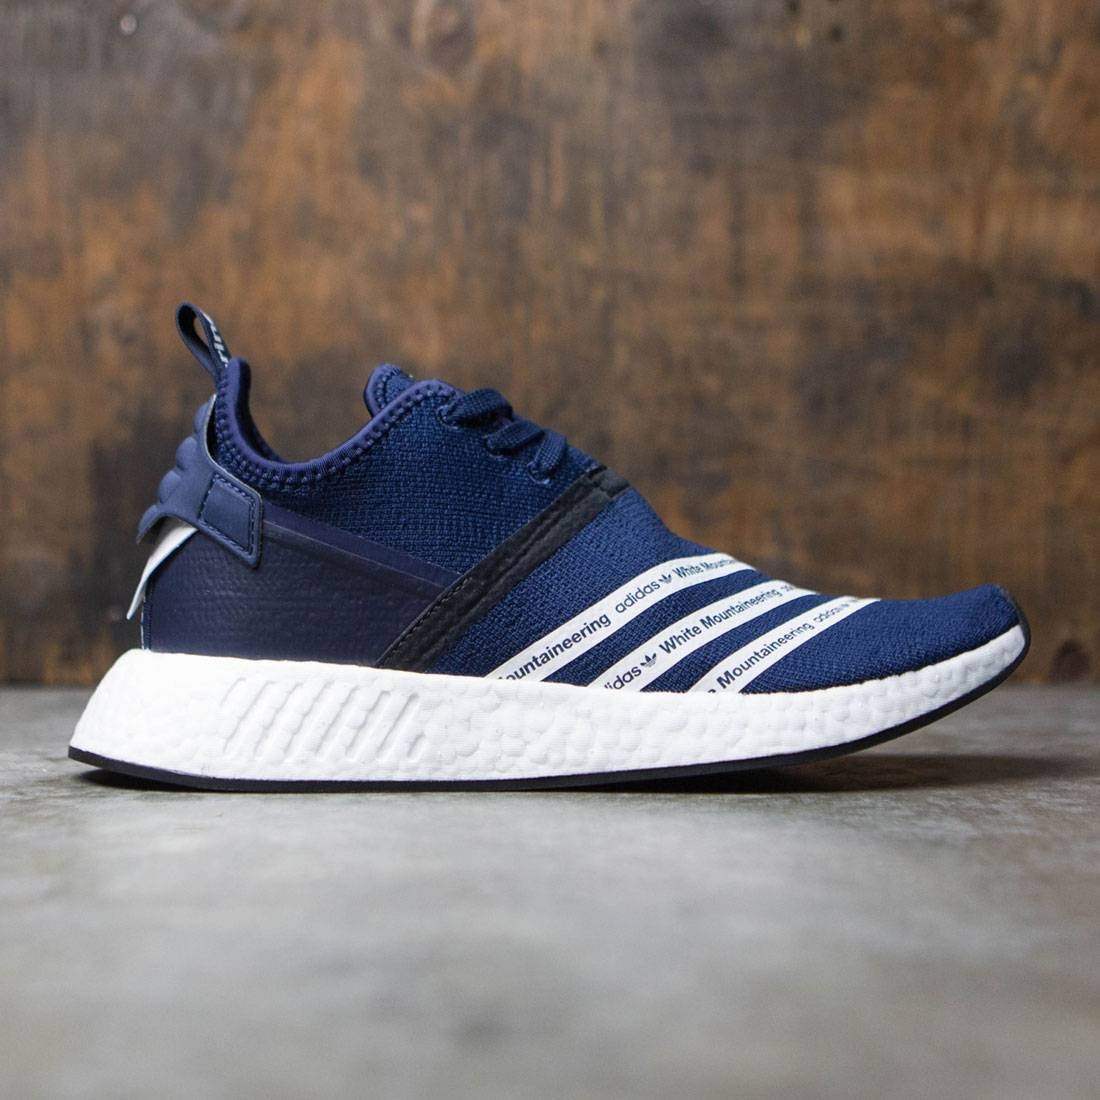 Adidas Men White Mountaineering NMD R2 Primeknit navy collegiate navy  footwear white d108aefb3949